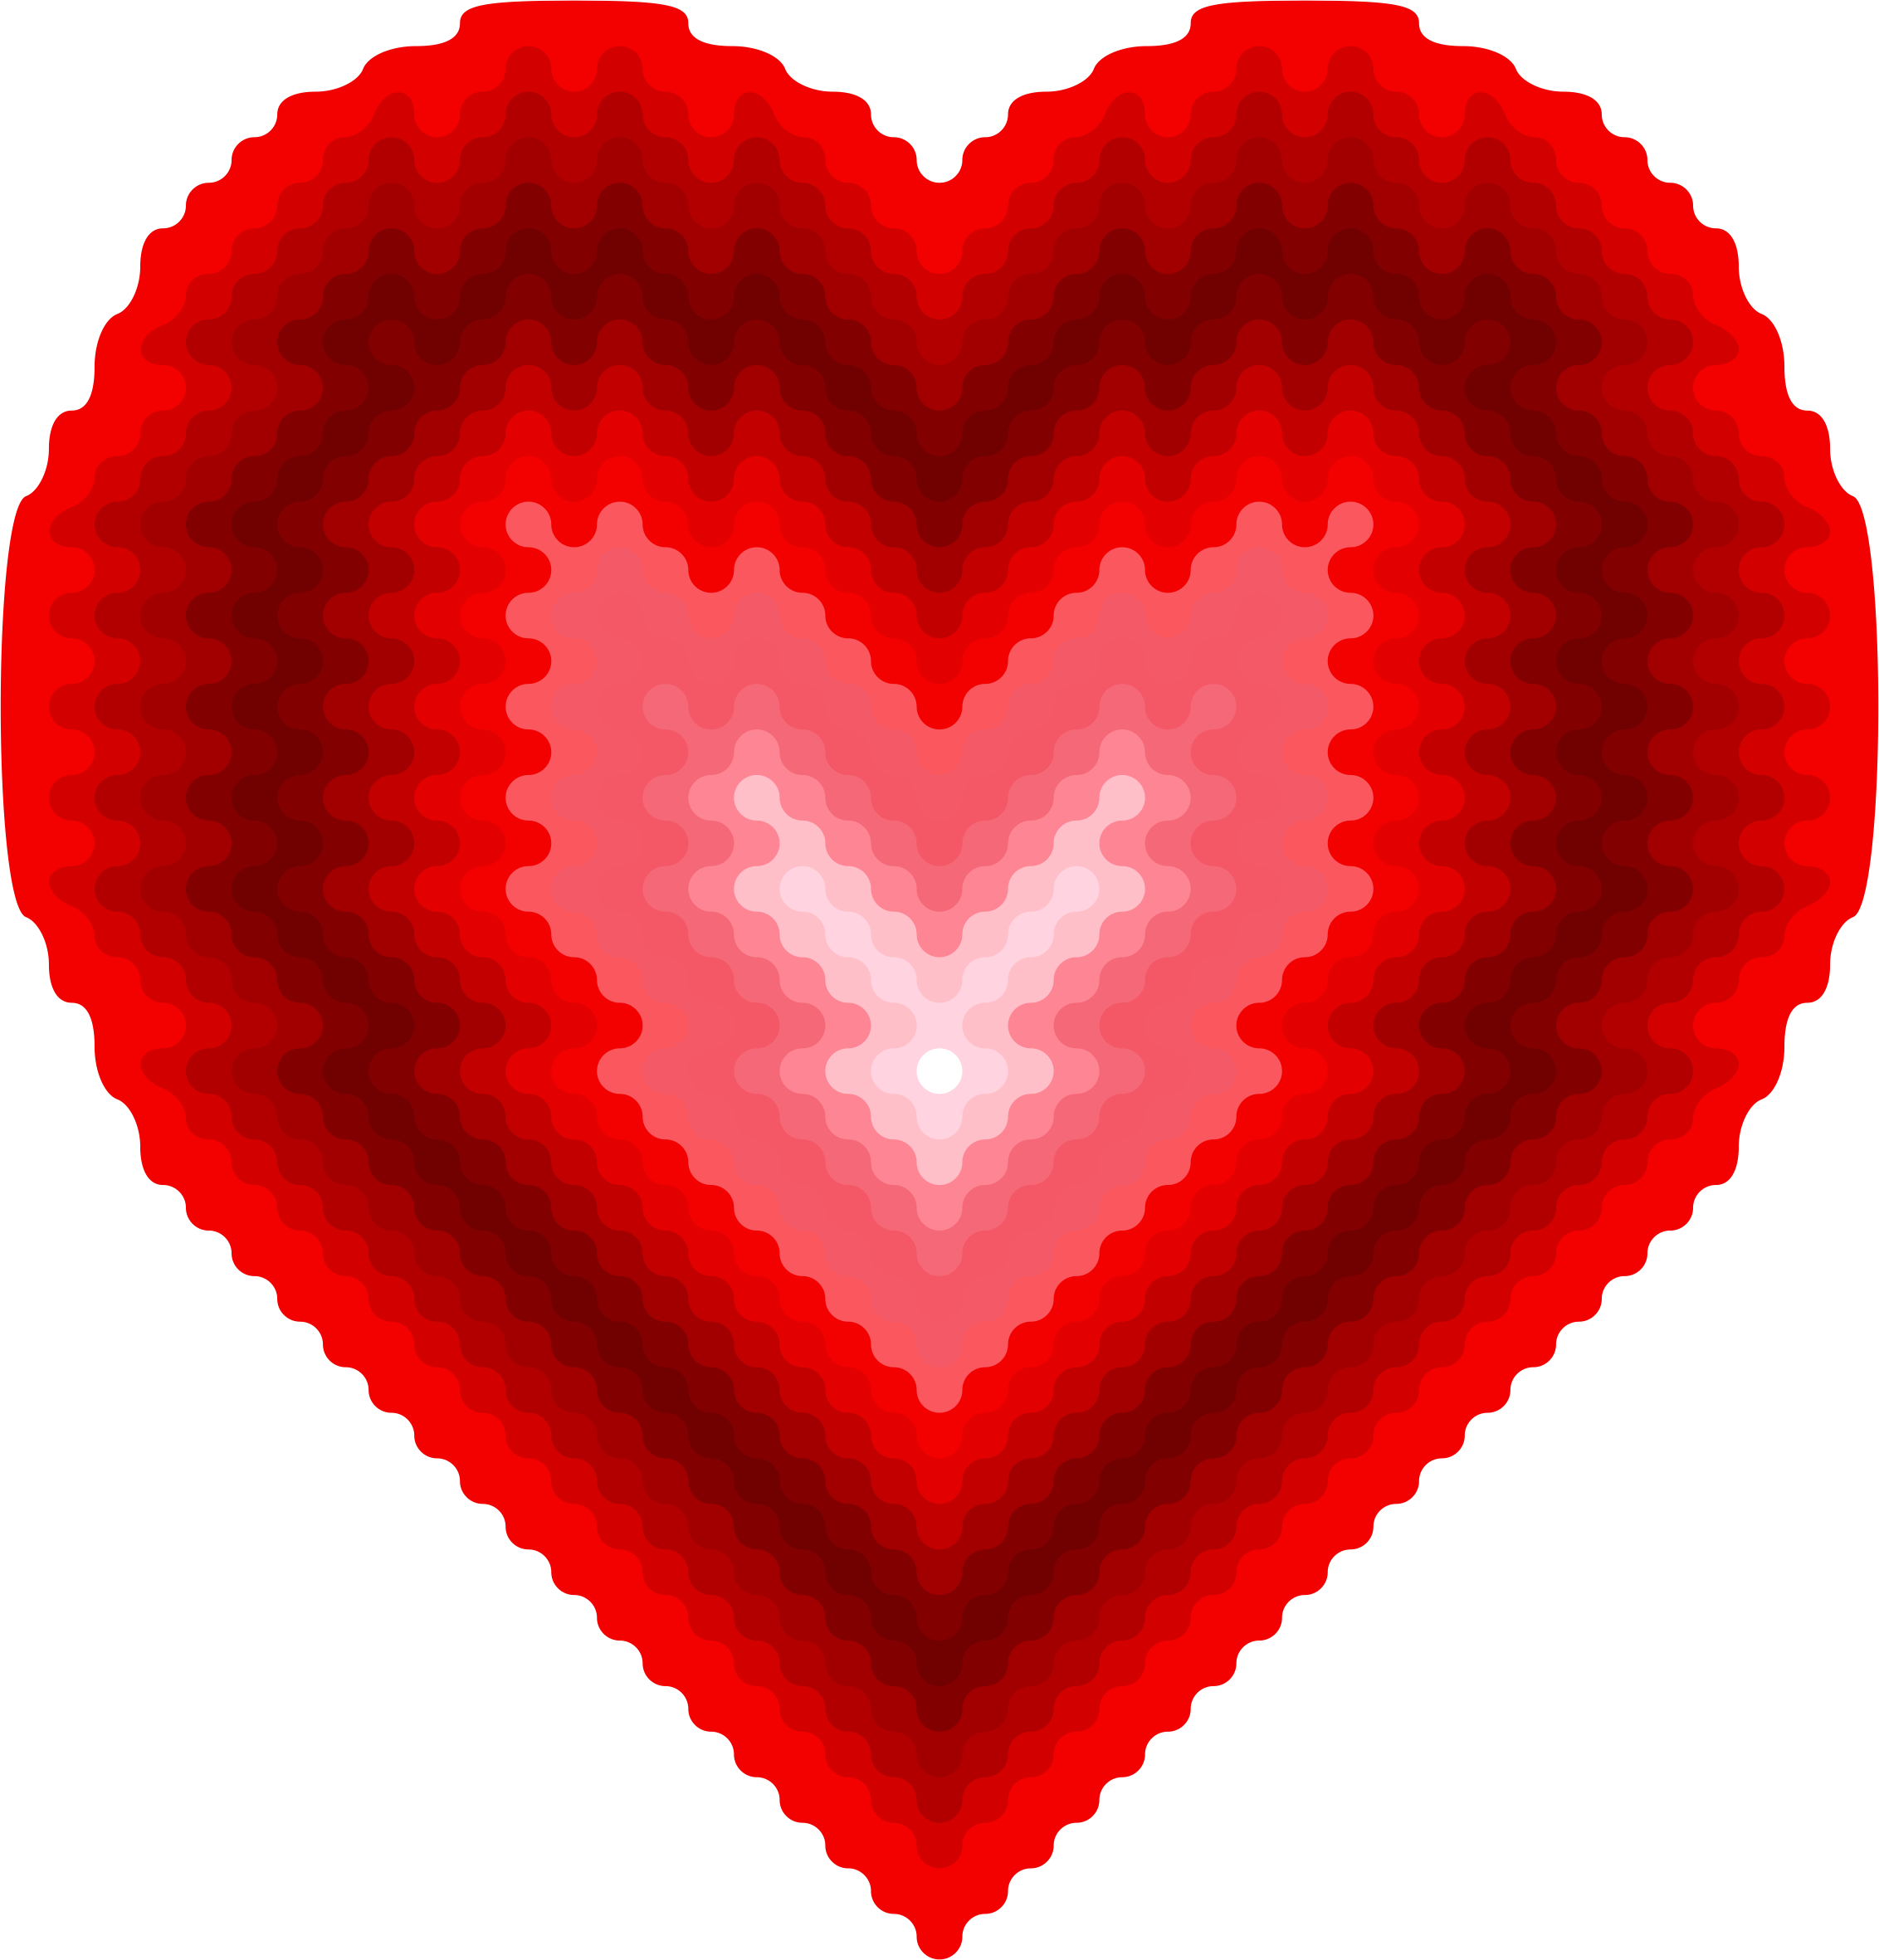 Wave dot big image. Waves clipart heart